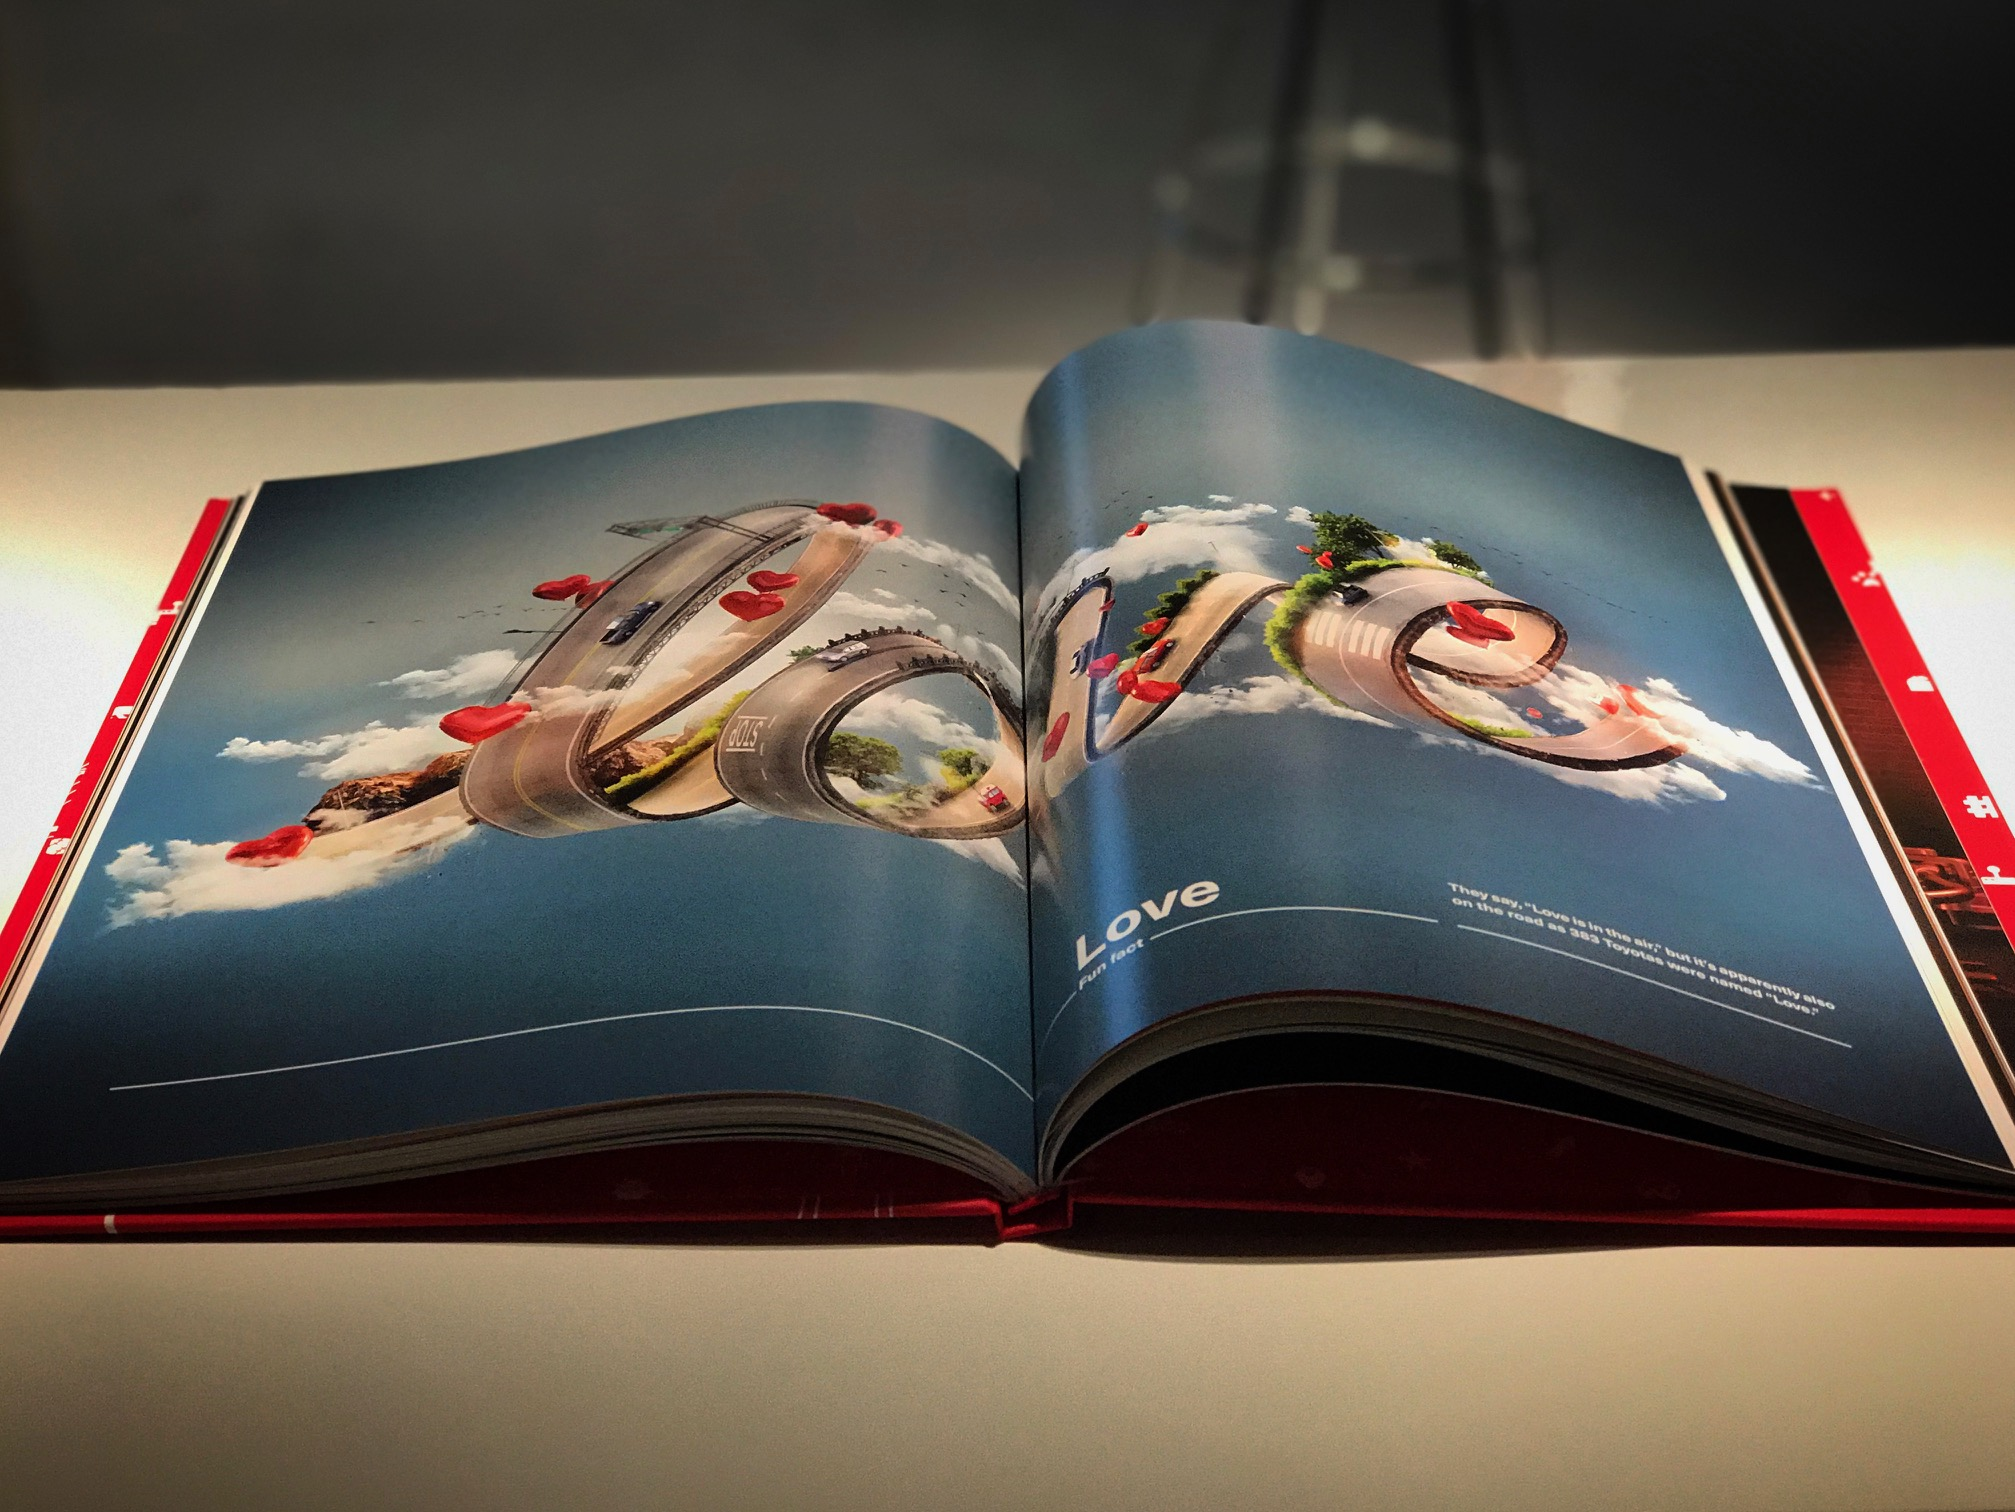 Toyota Celebrates the Love Owners Have for their Cars with the 'Book of Names'